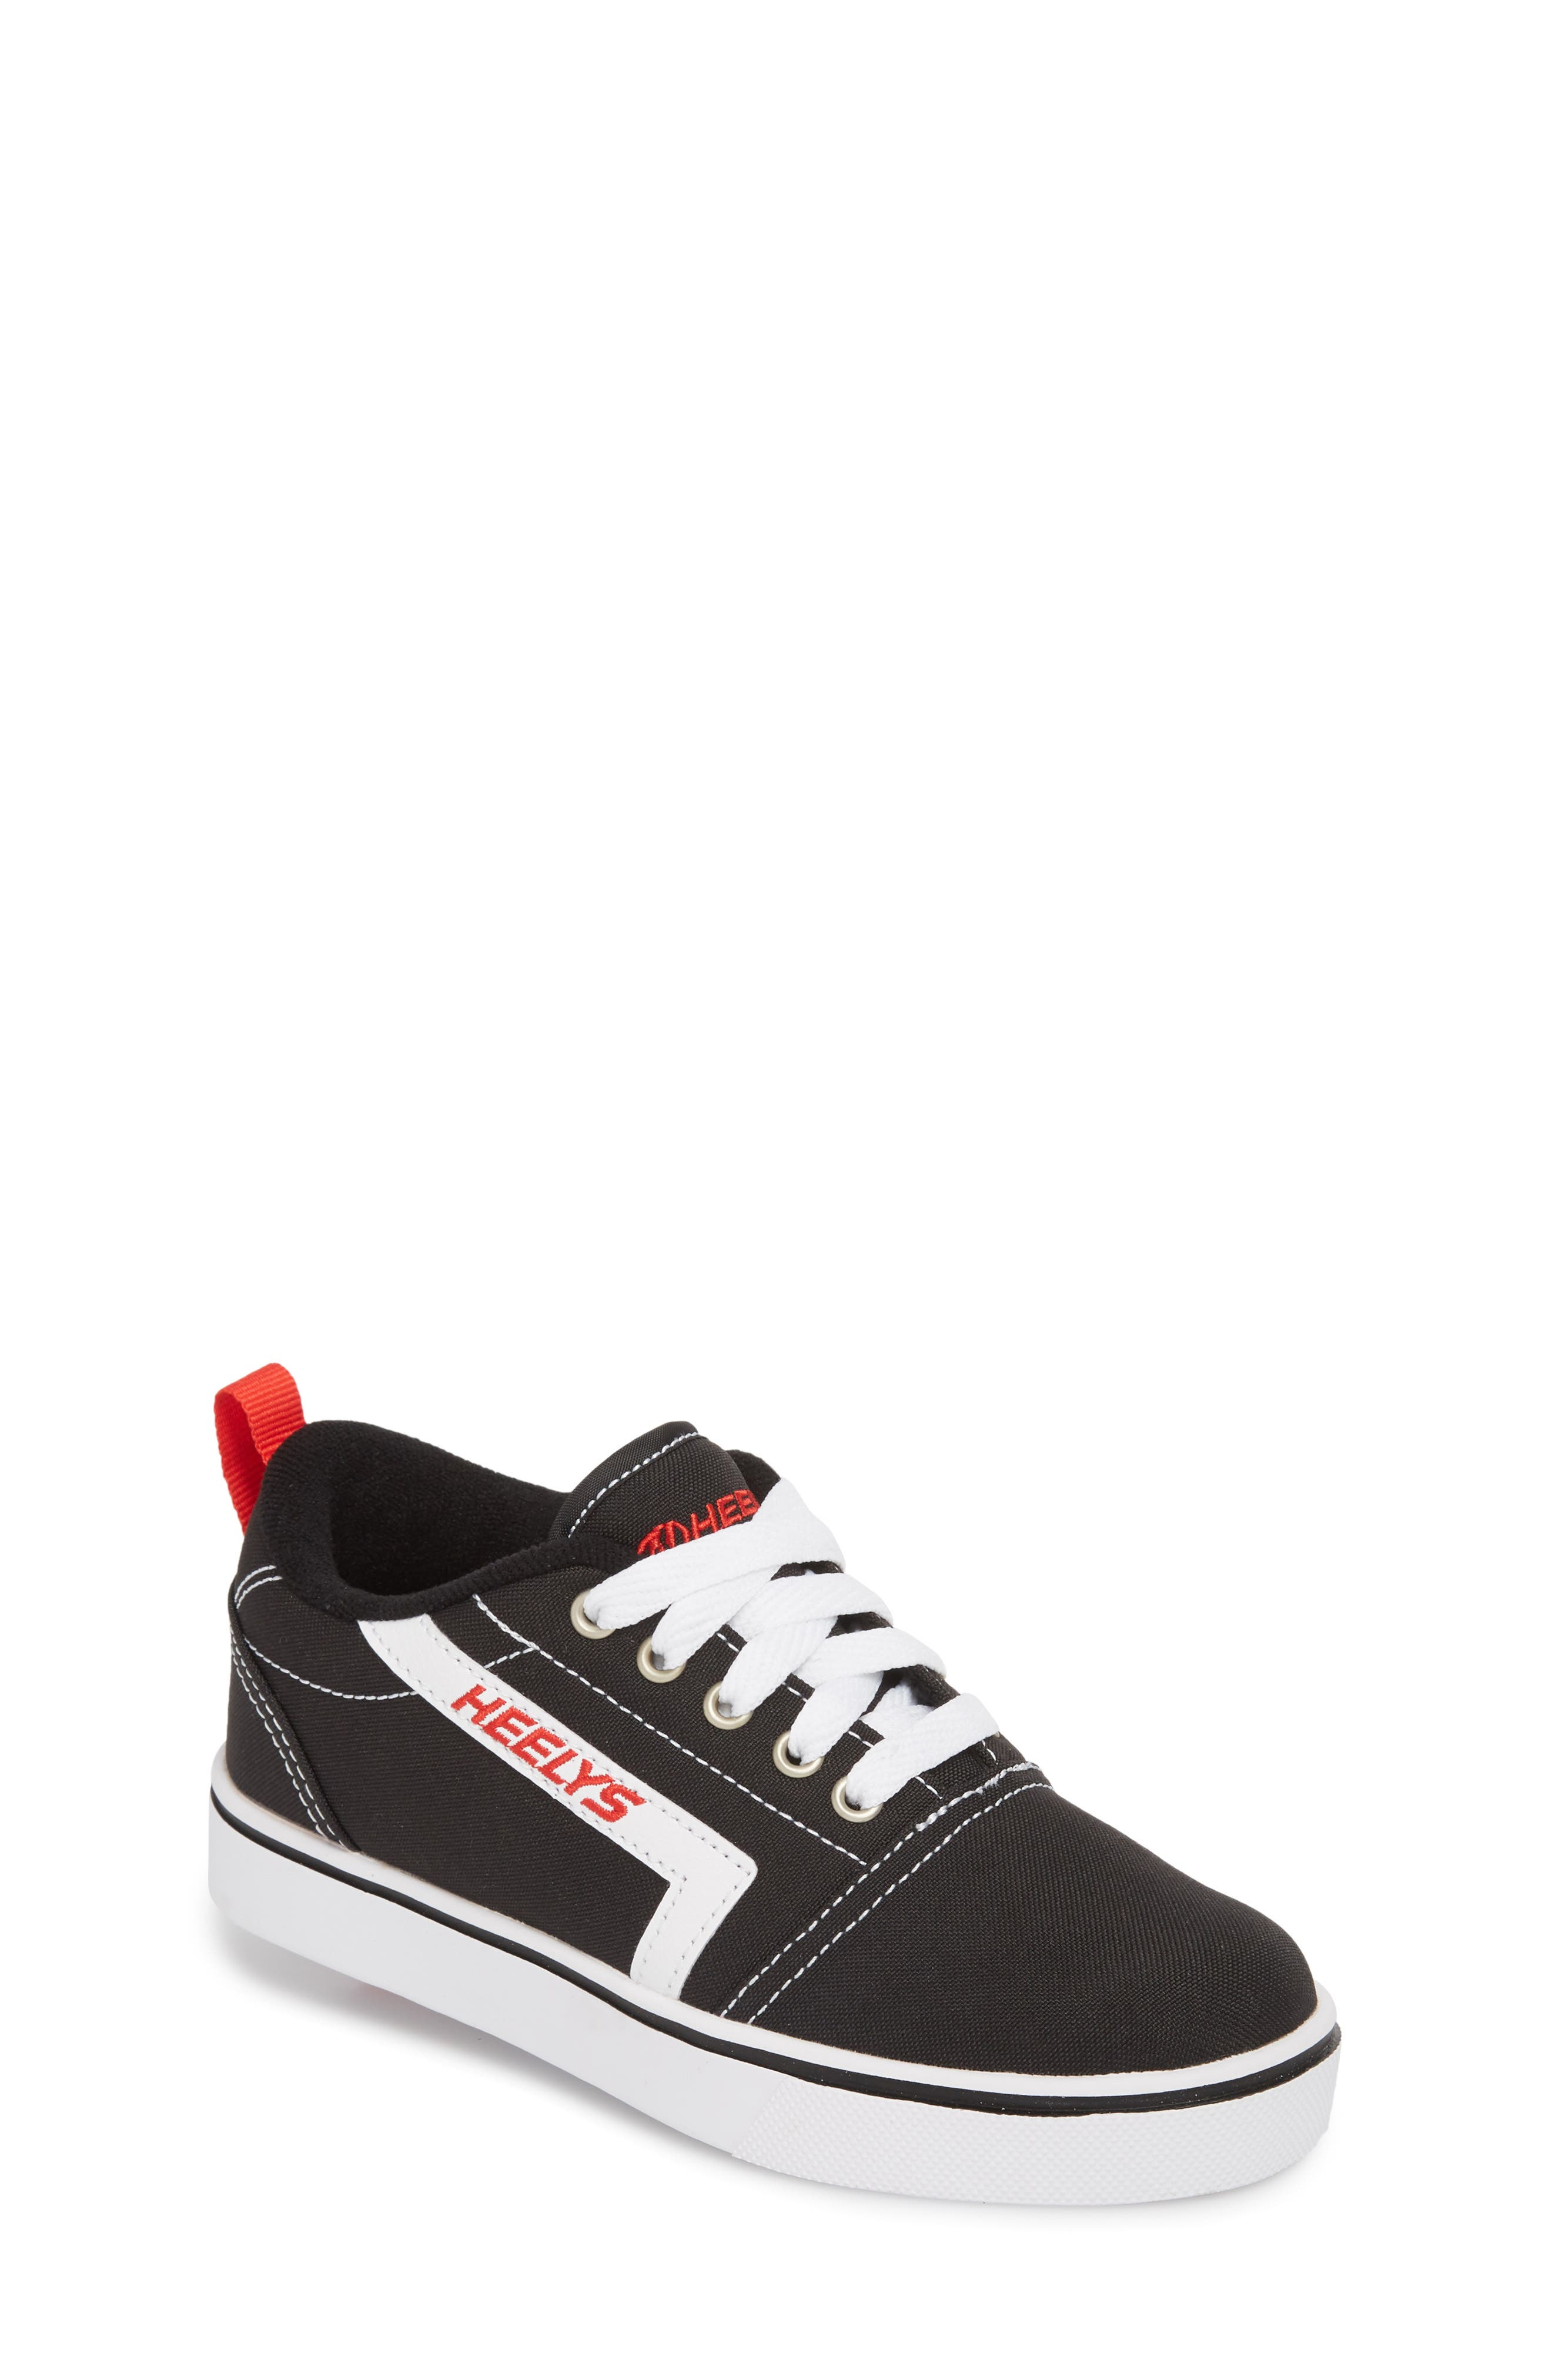 GR8 Pro Wheeled Sneaker,                         Main,                         color, BLACK/ WHITE/ RED